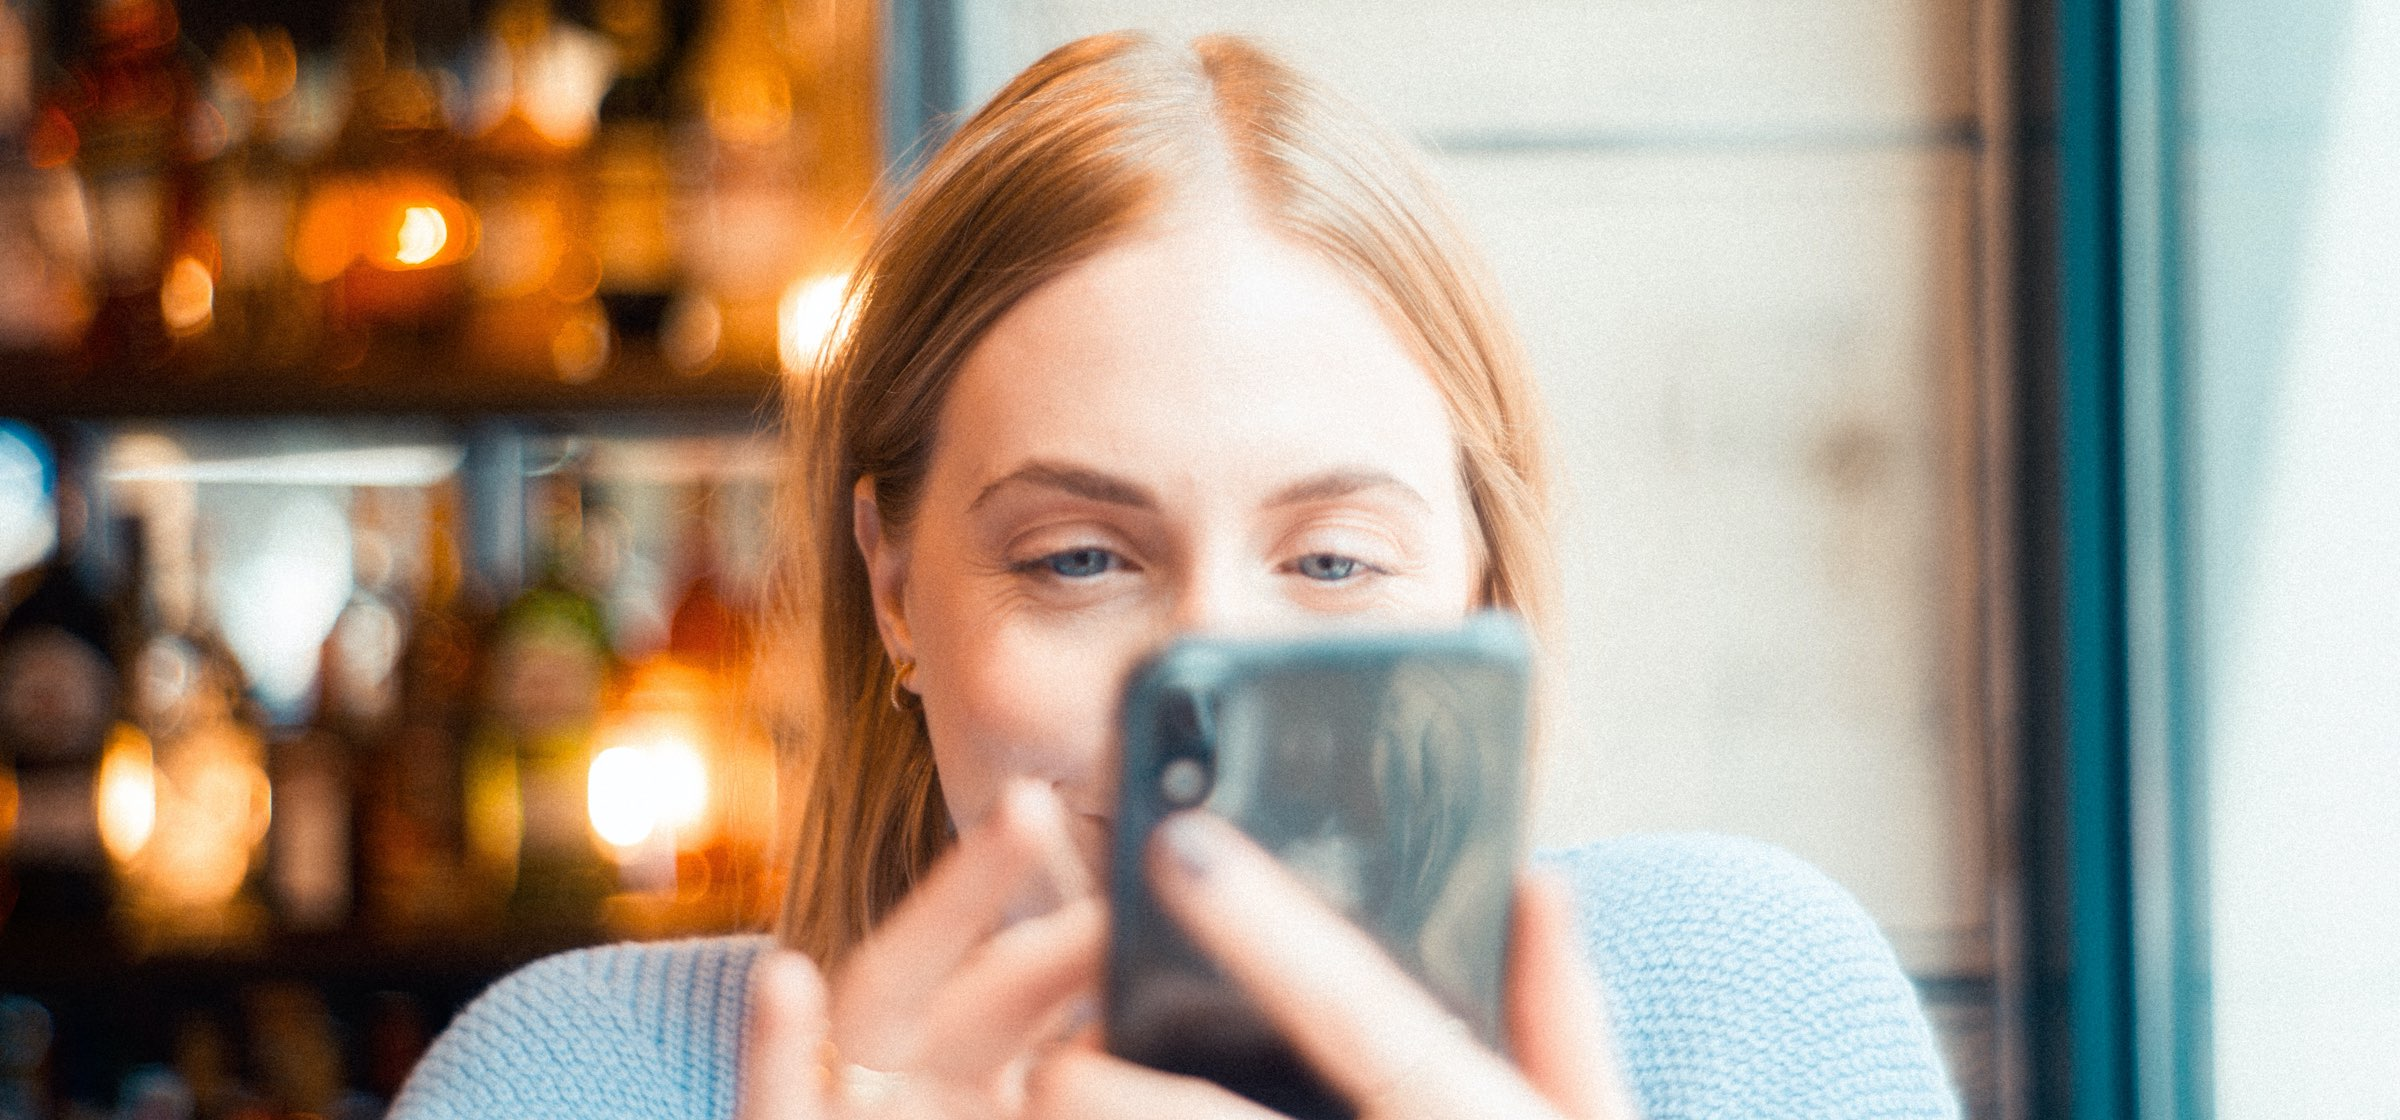 Text message appointment reminders reduce no-shows by 38%, study finds